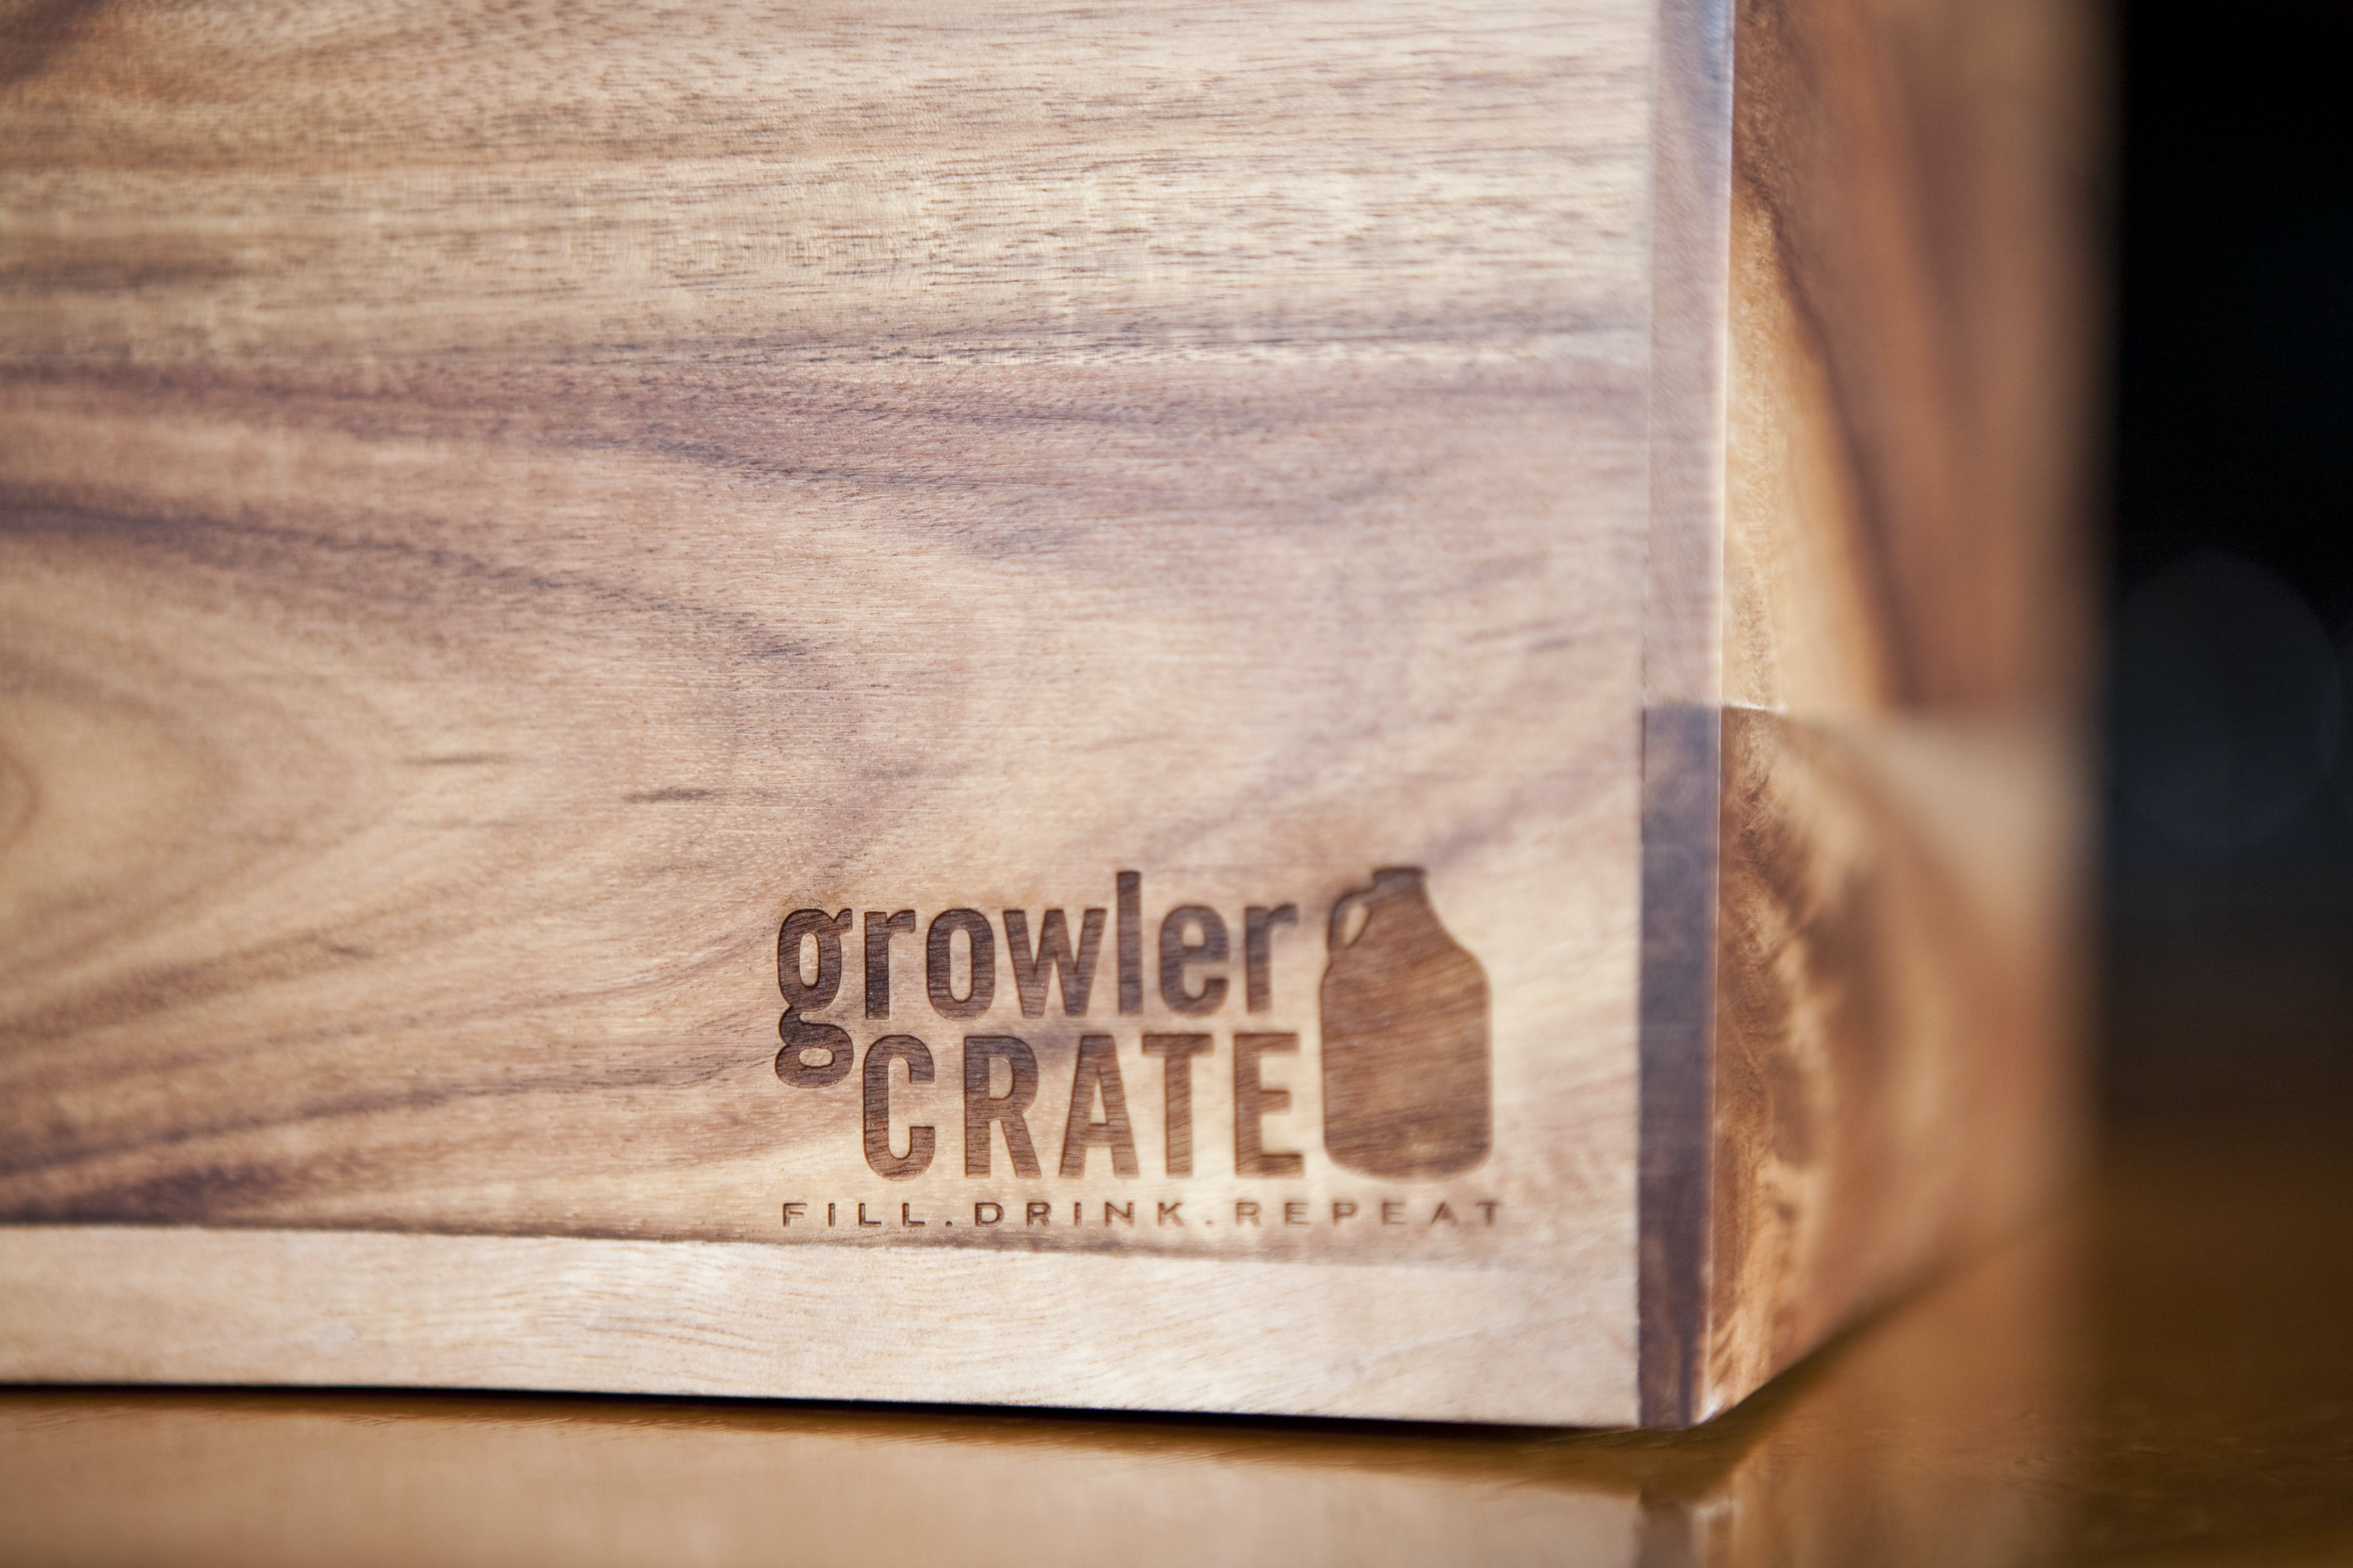 Growler Crate - Two Seater - sold by Growlercrate LLC [CLOSED]